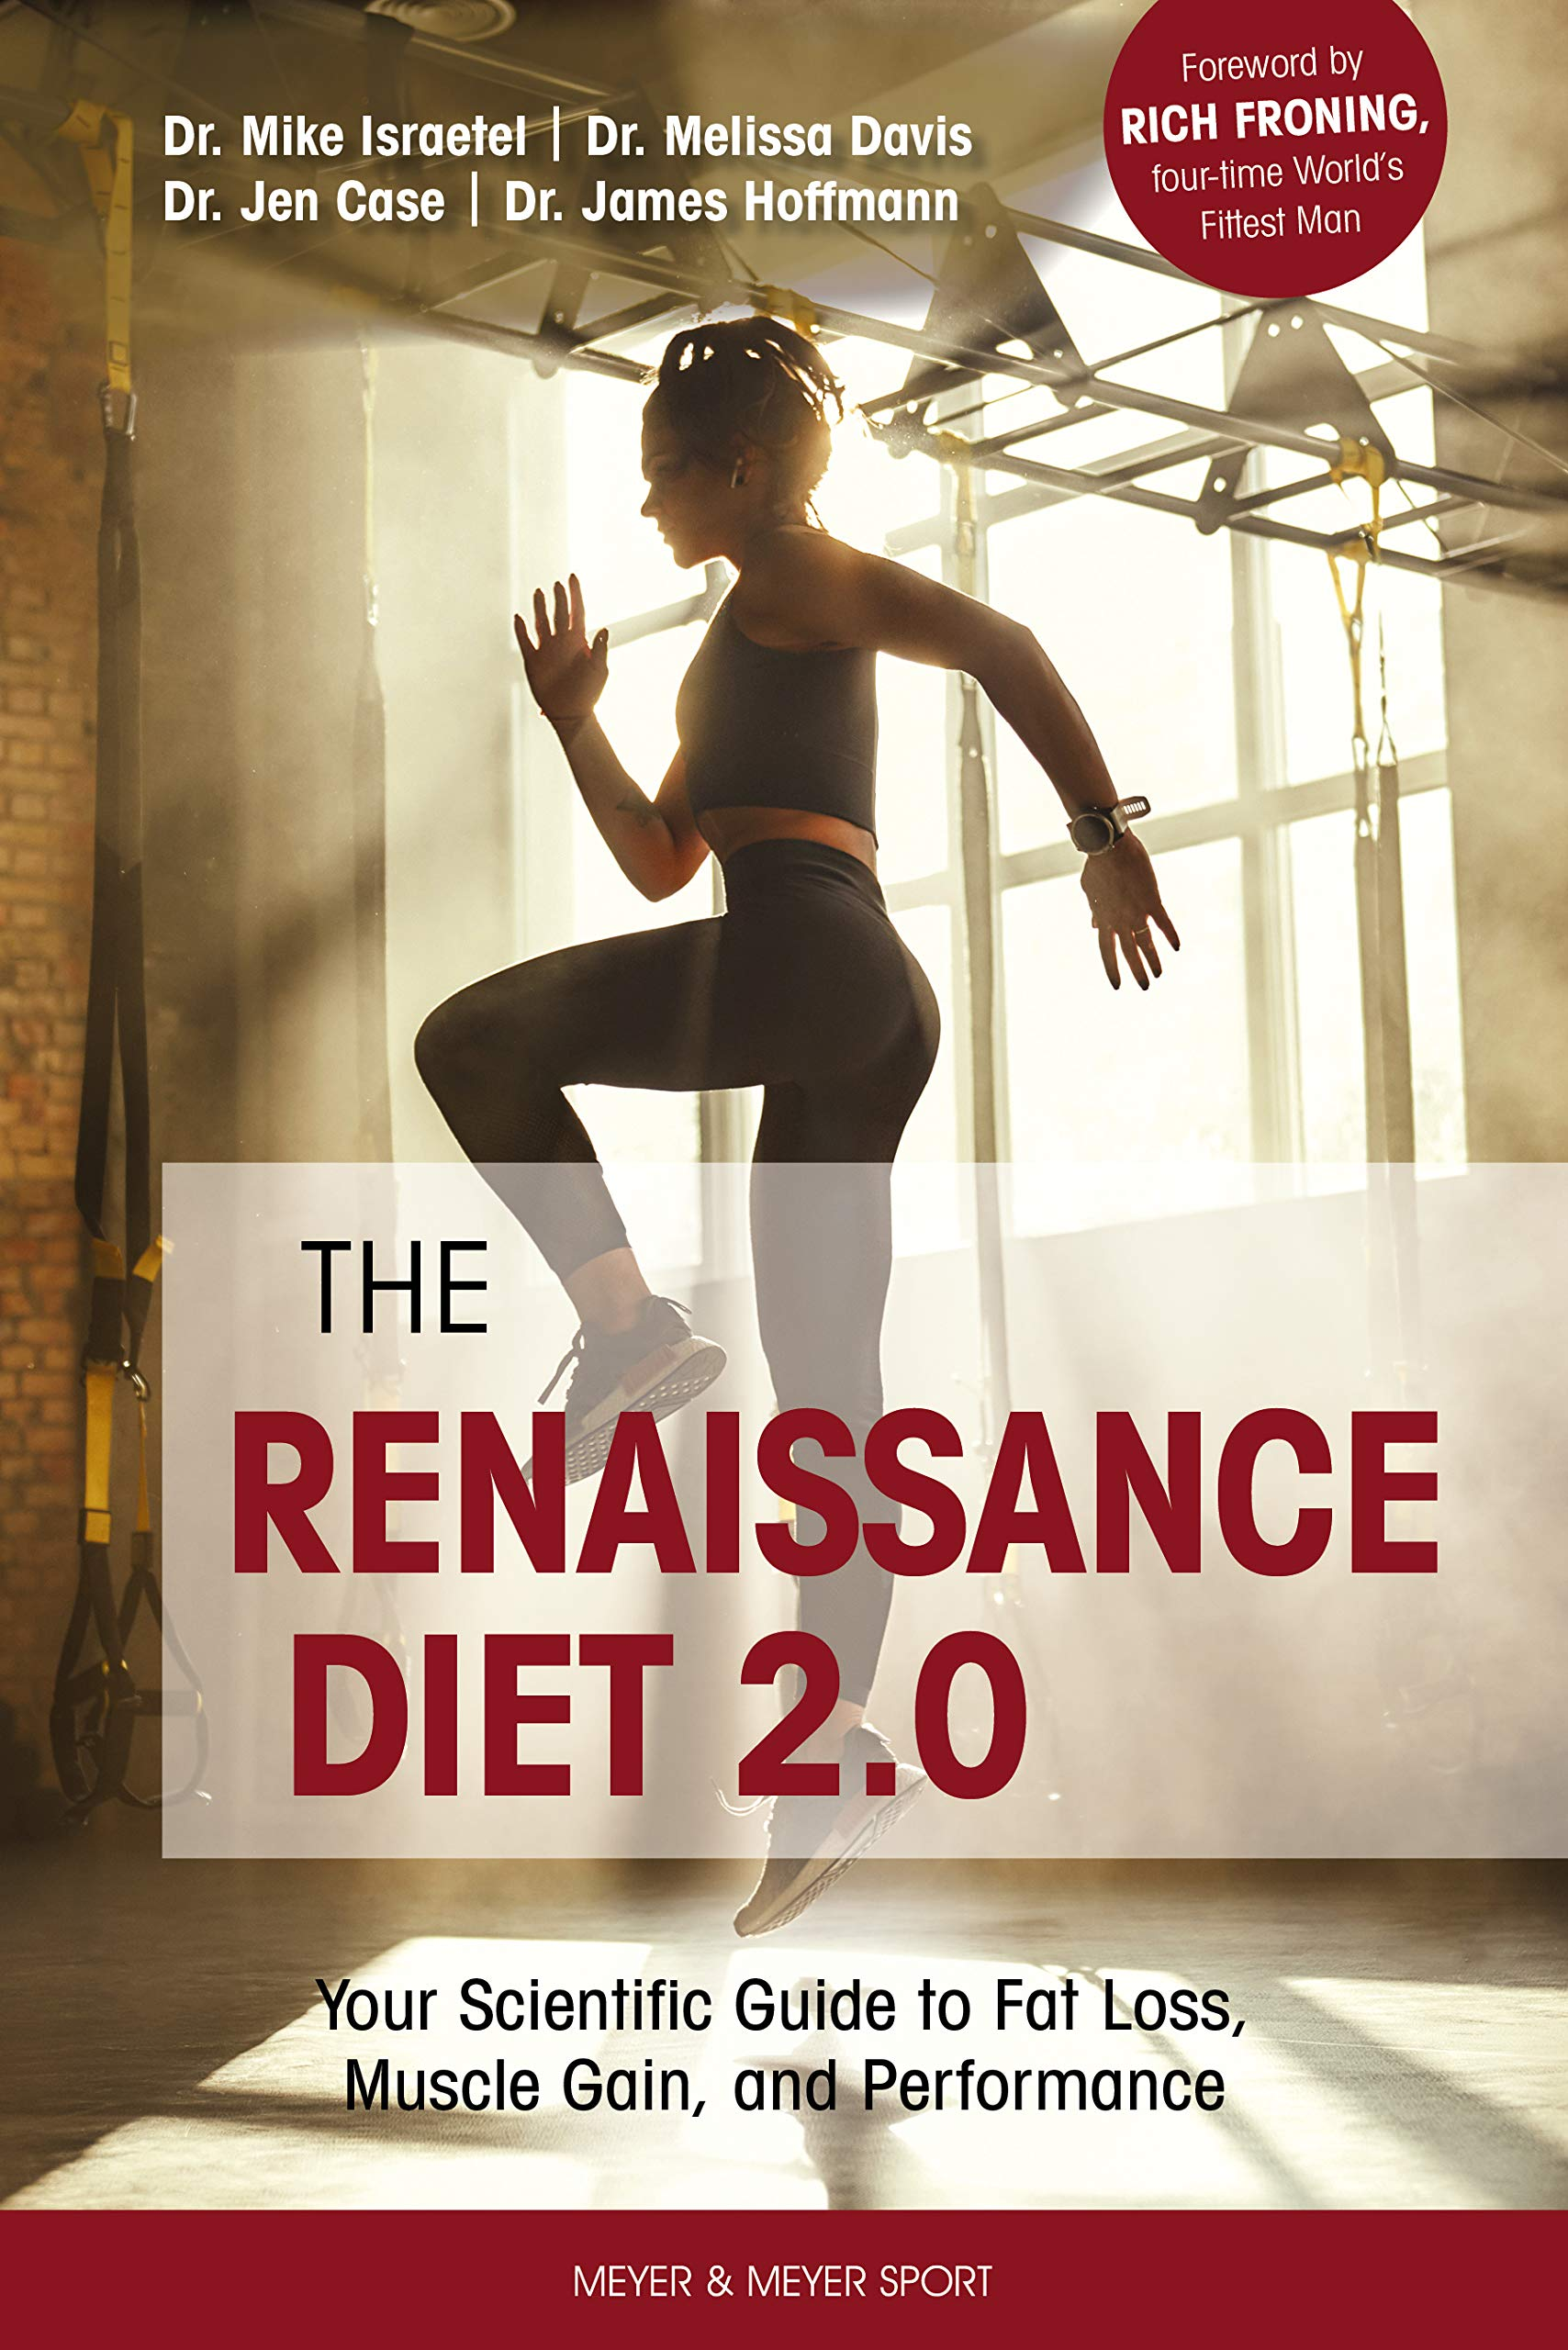 The Renaissance Diet 2 0 Your Scientific Guide To Fat Loss Muscle Gain And Performance Mike Israetel Melissa Davis Jen Case Dr James Hoffman Nick Shaw Renaissance Periodization Foreword By Rich Froning 9781782551904